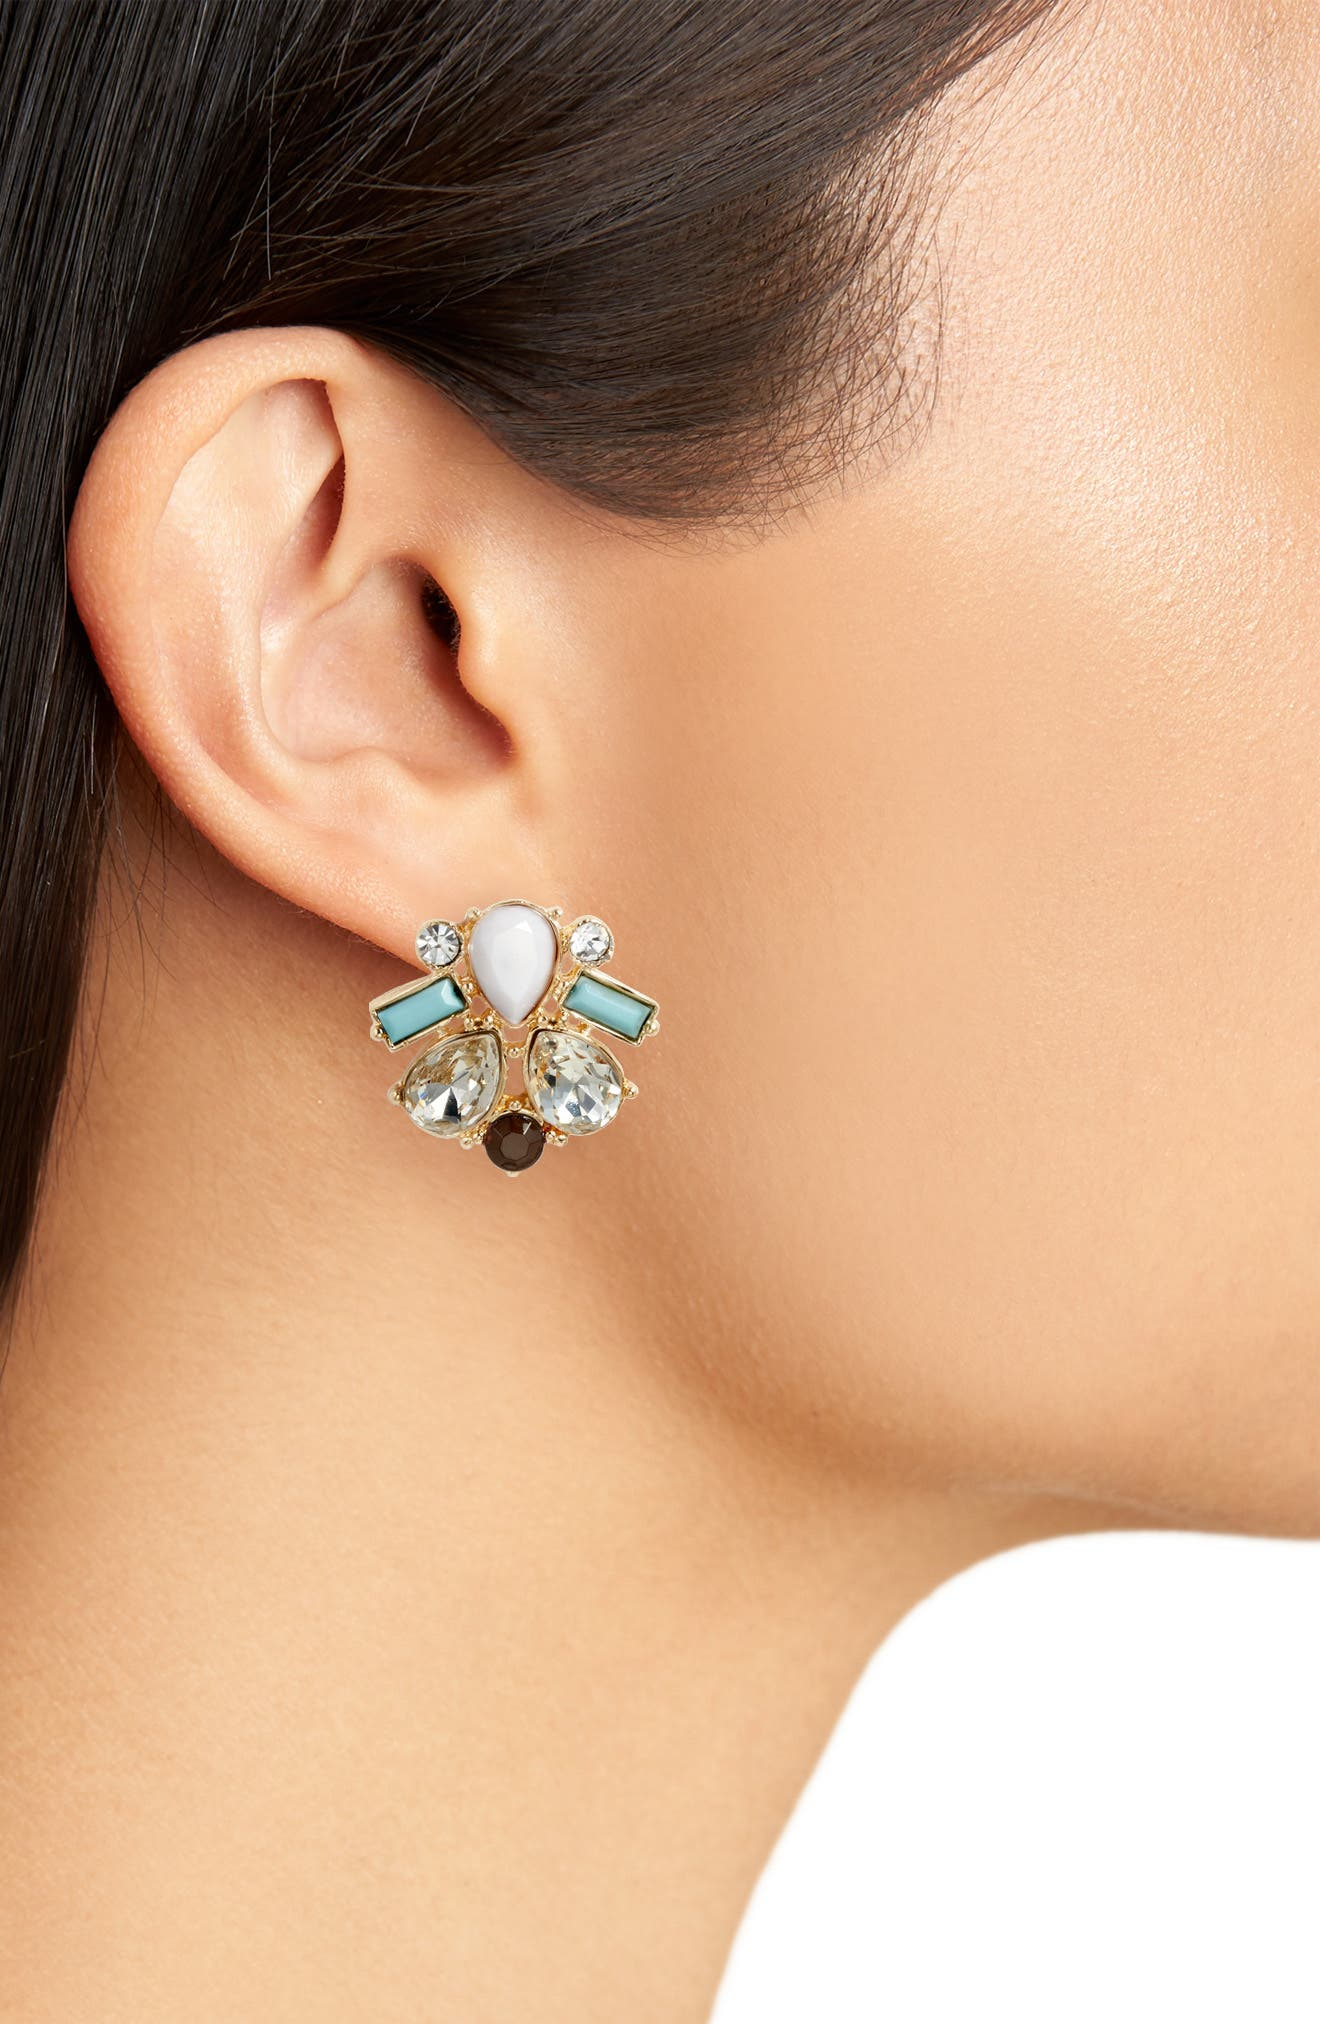 Crystal & Stone Stud Earrings,                             Alternate thumbnail 2, color,                             650